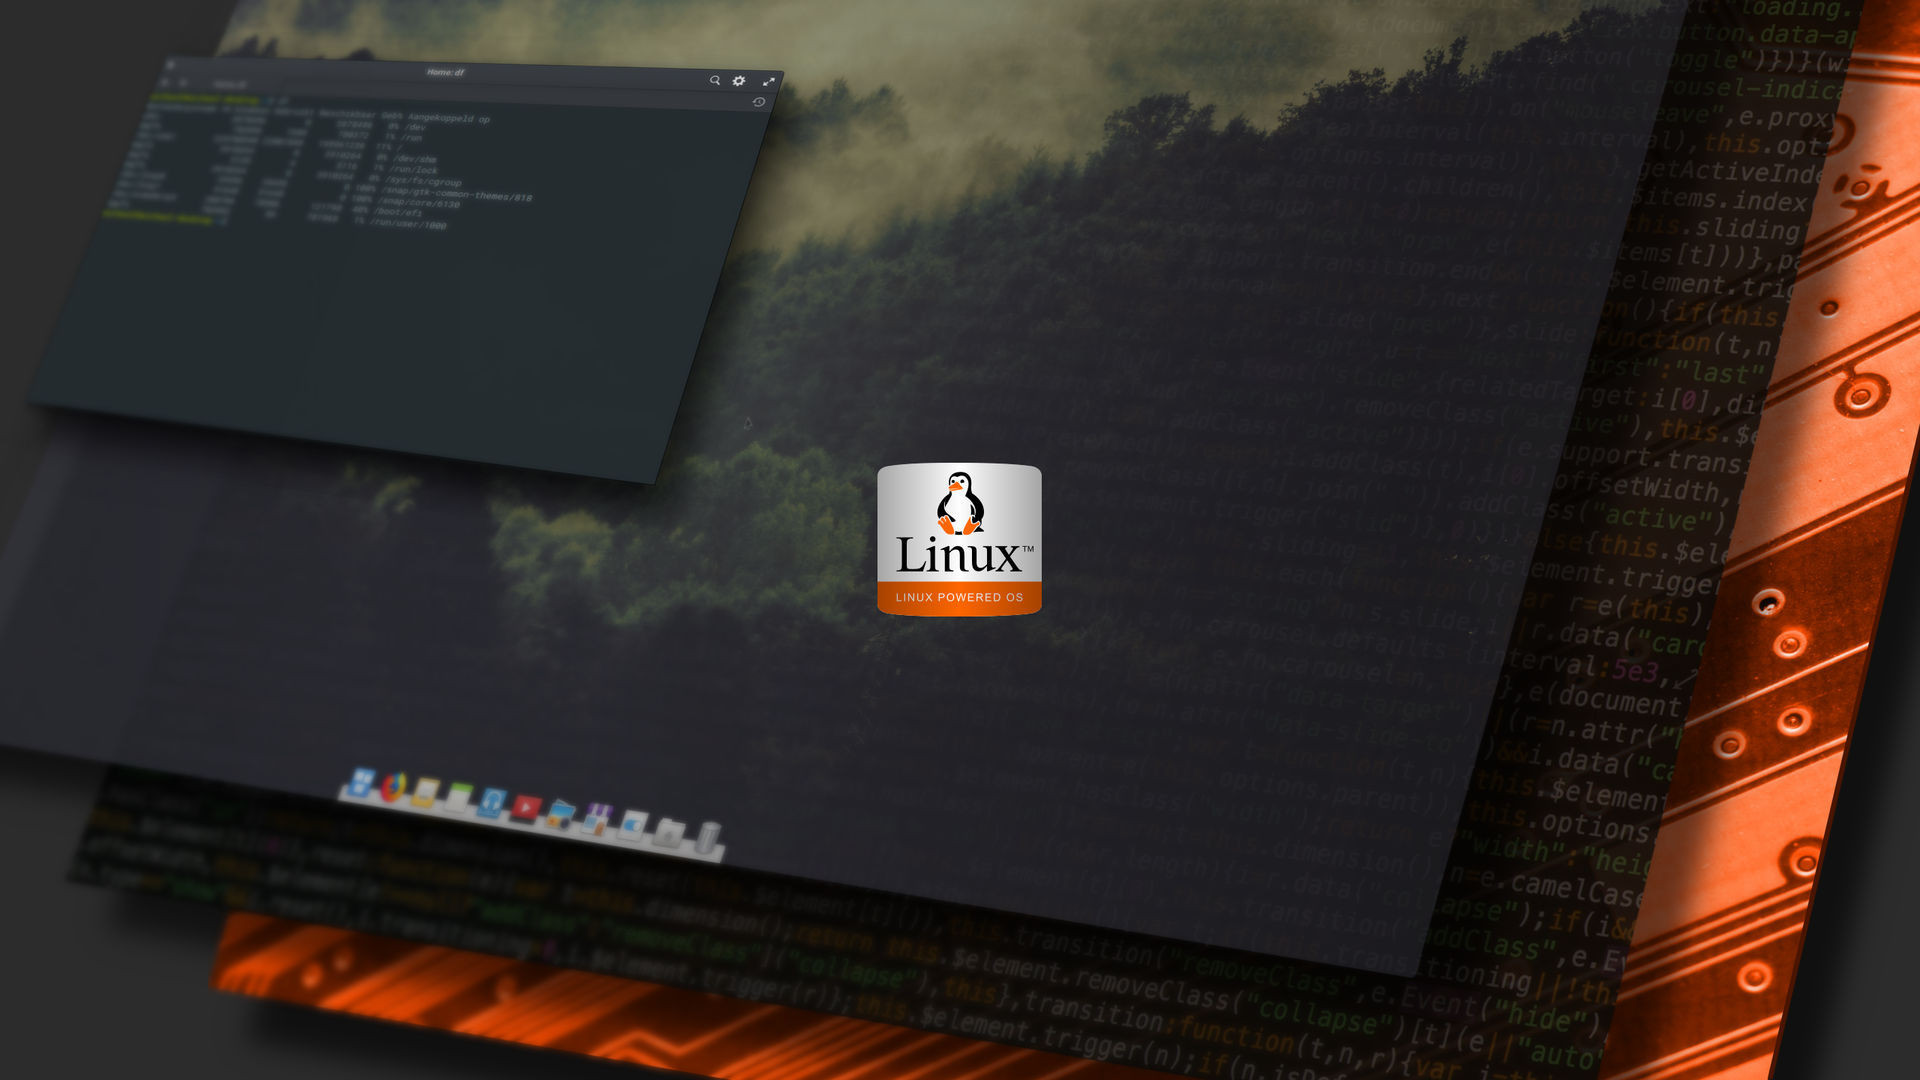 Res: 1920x1080, Linux Free Wide Wallpaper